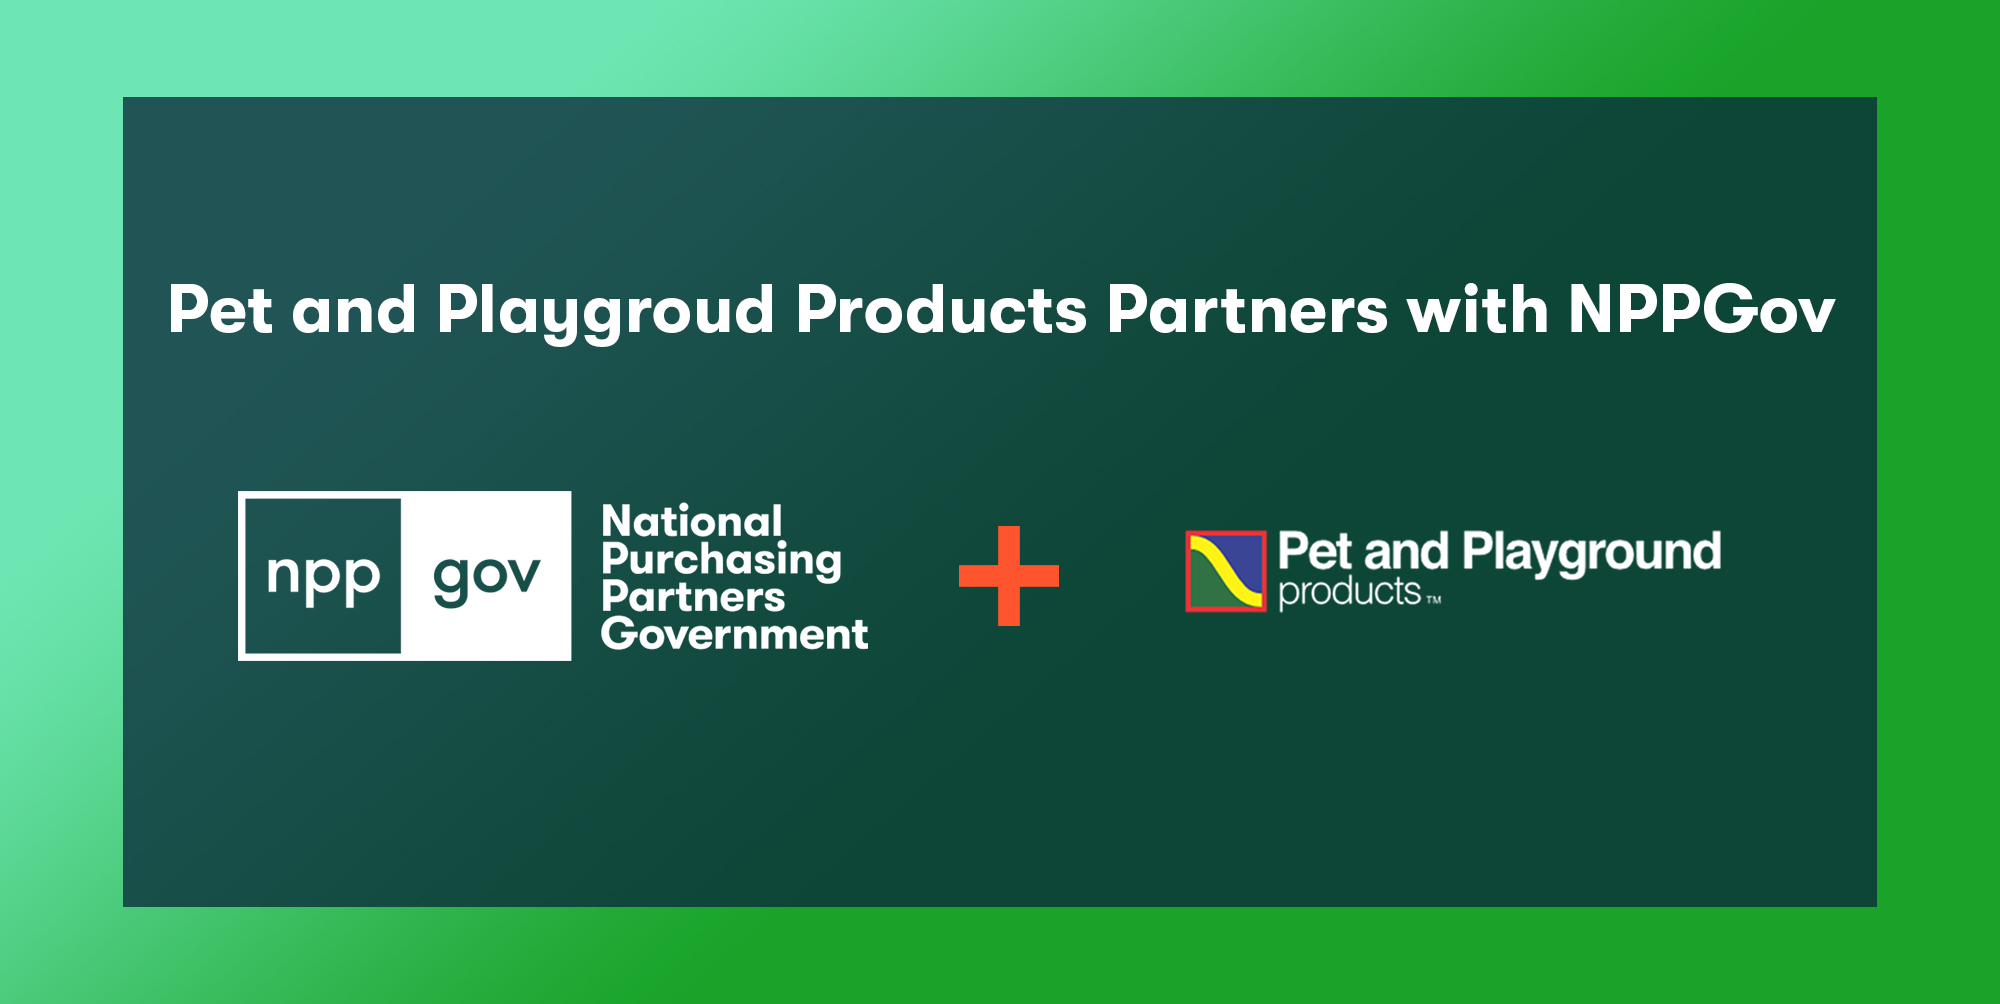 Pet and Playground Partners with NPPGov